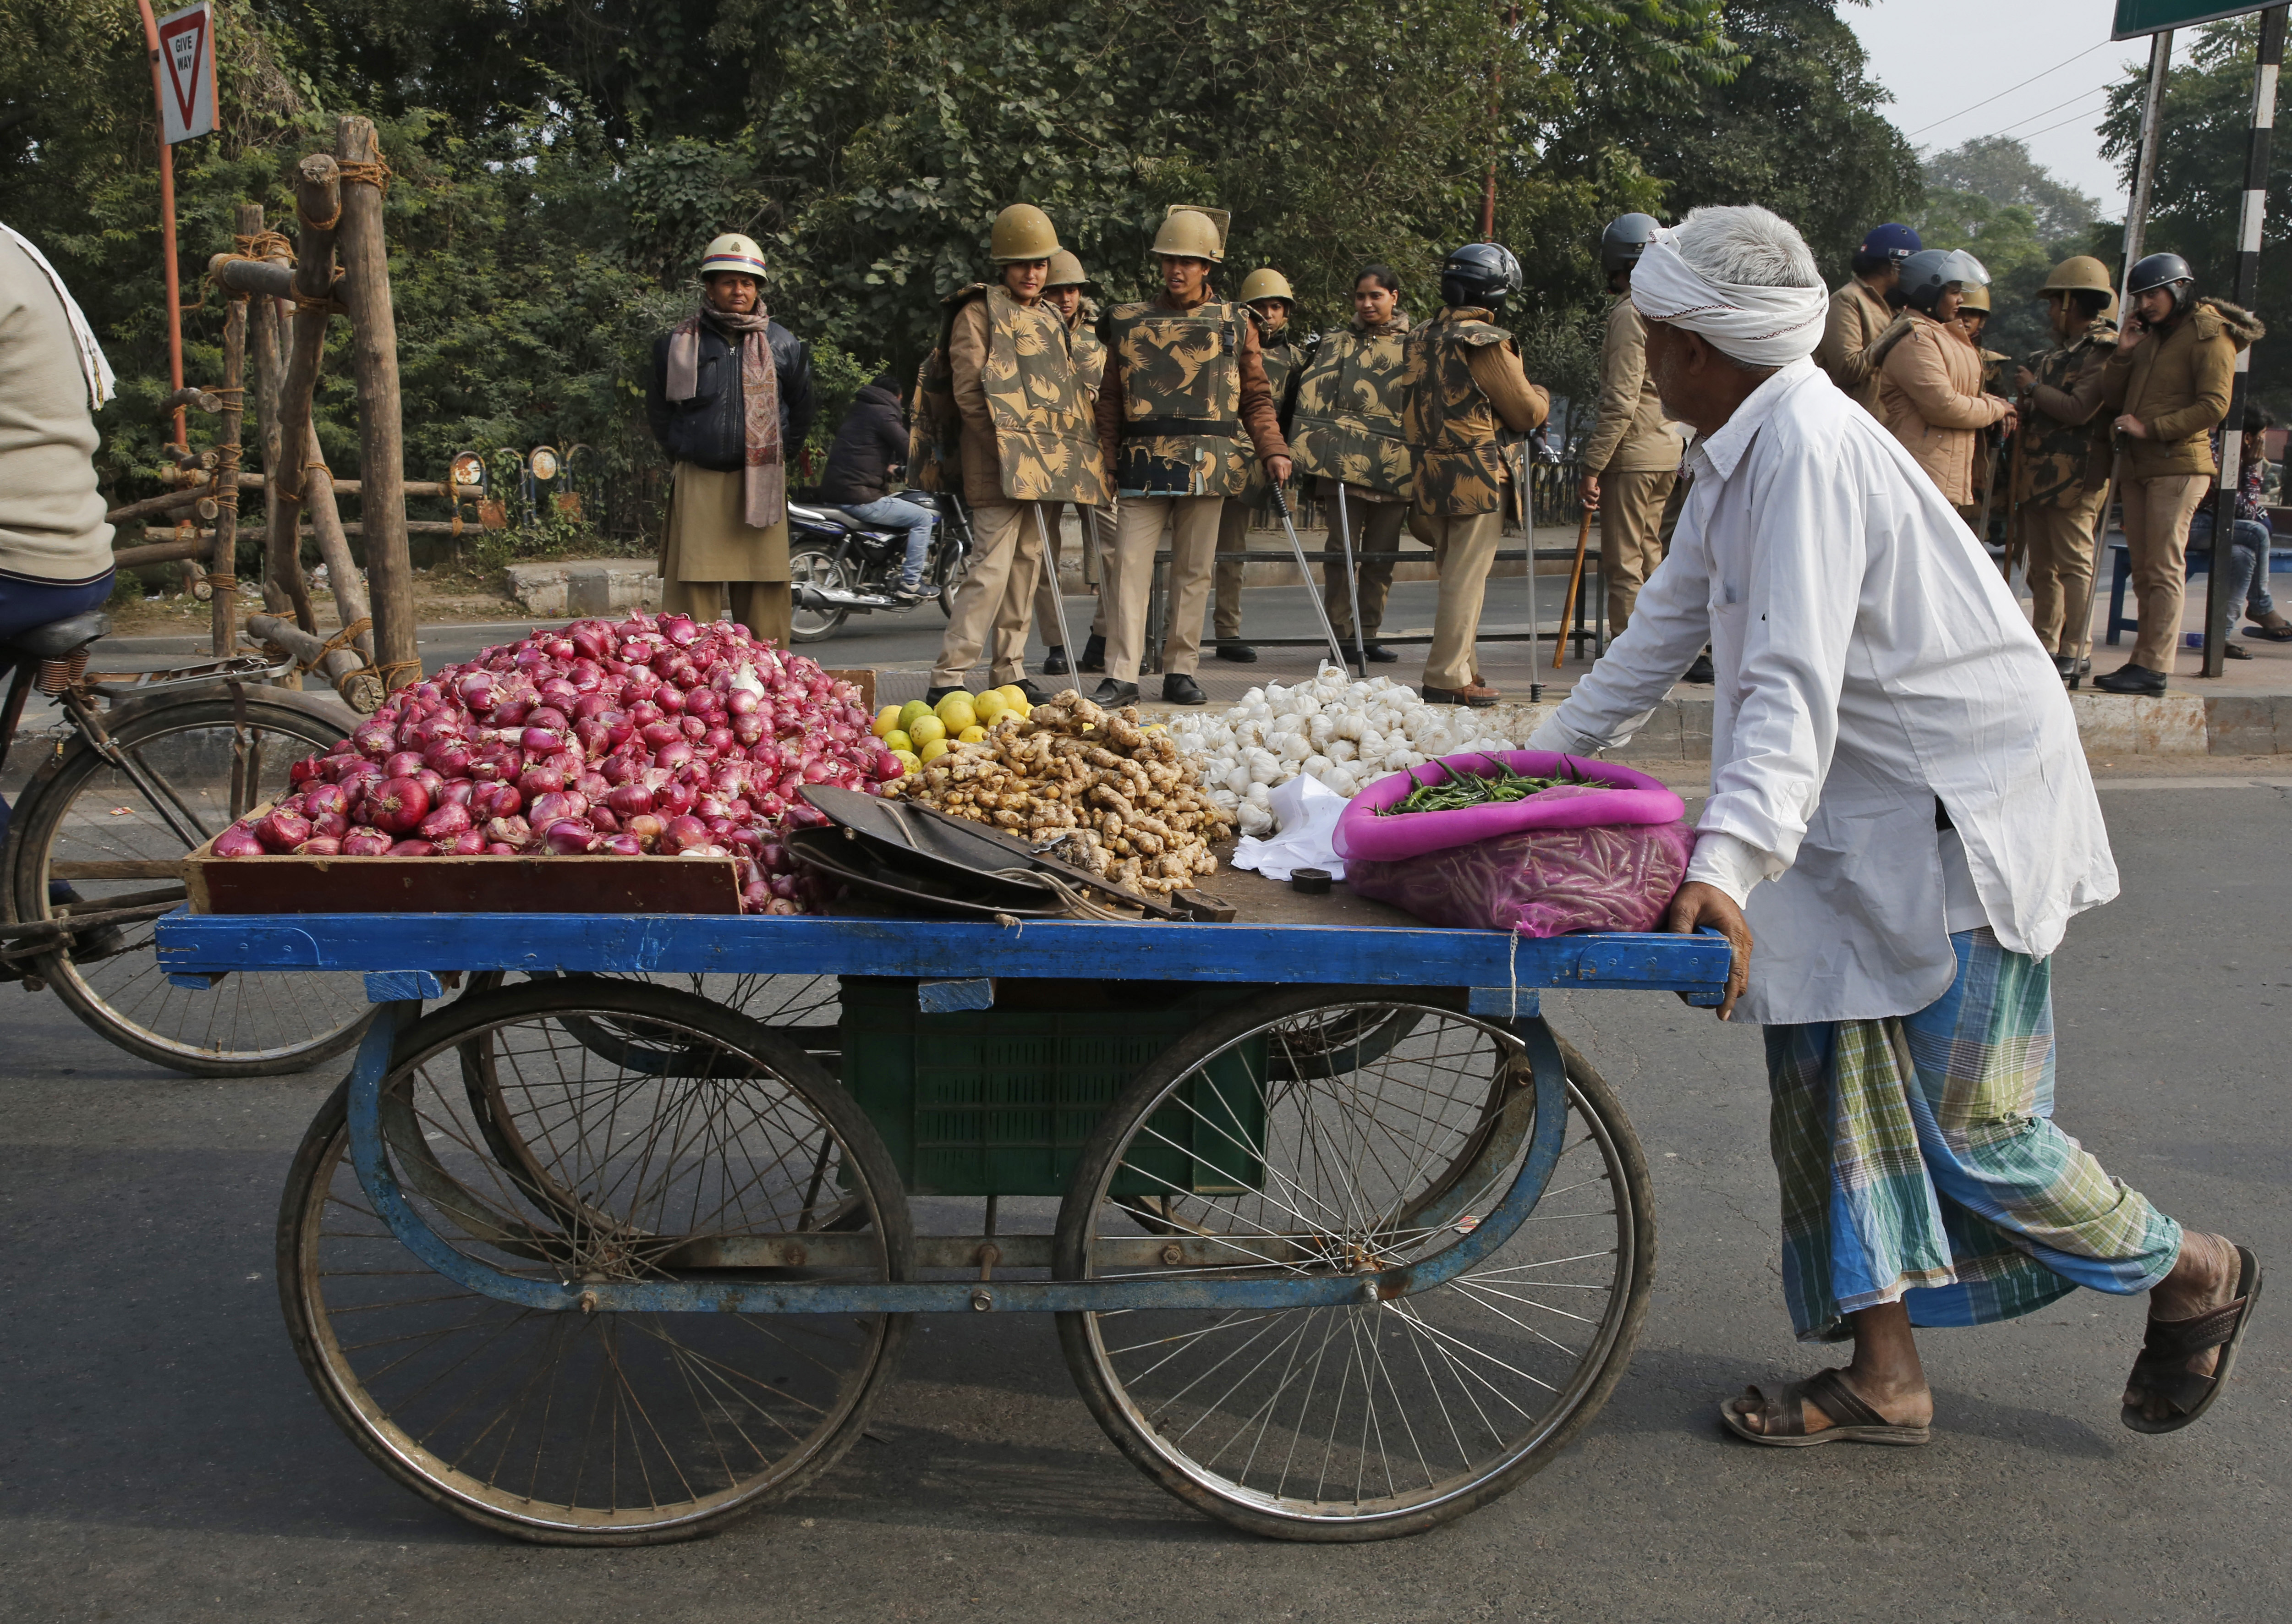 India clamps down on marches, internet after deadly protests